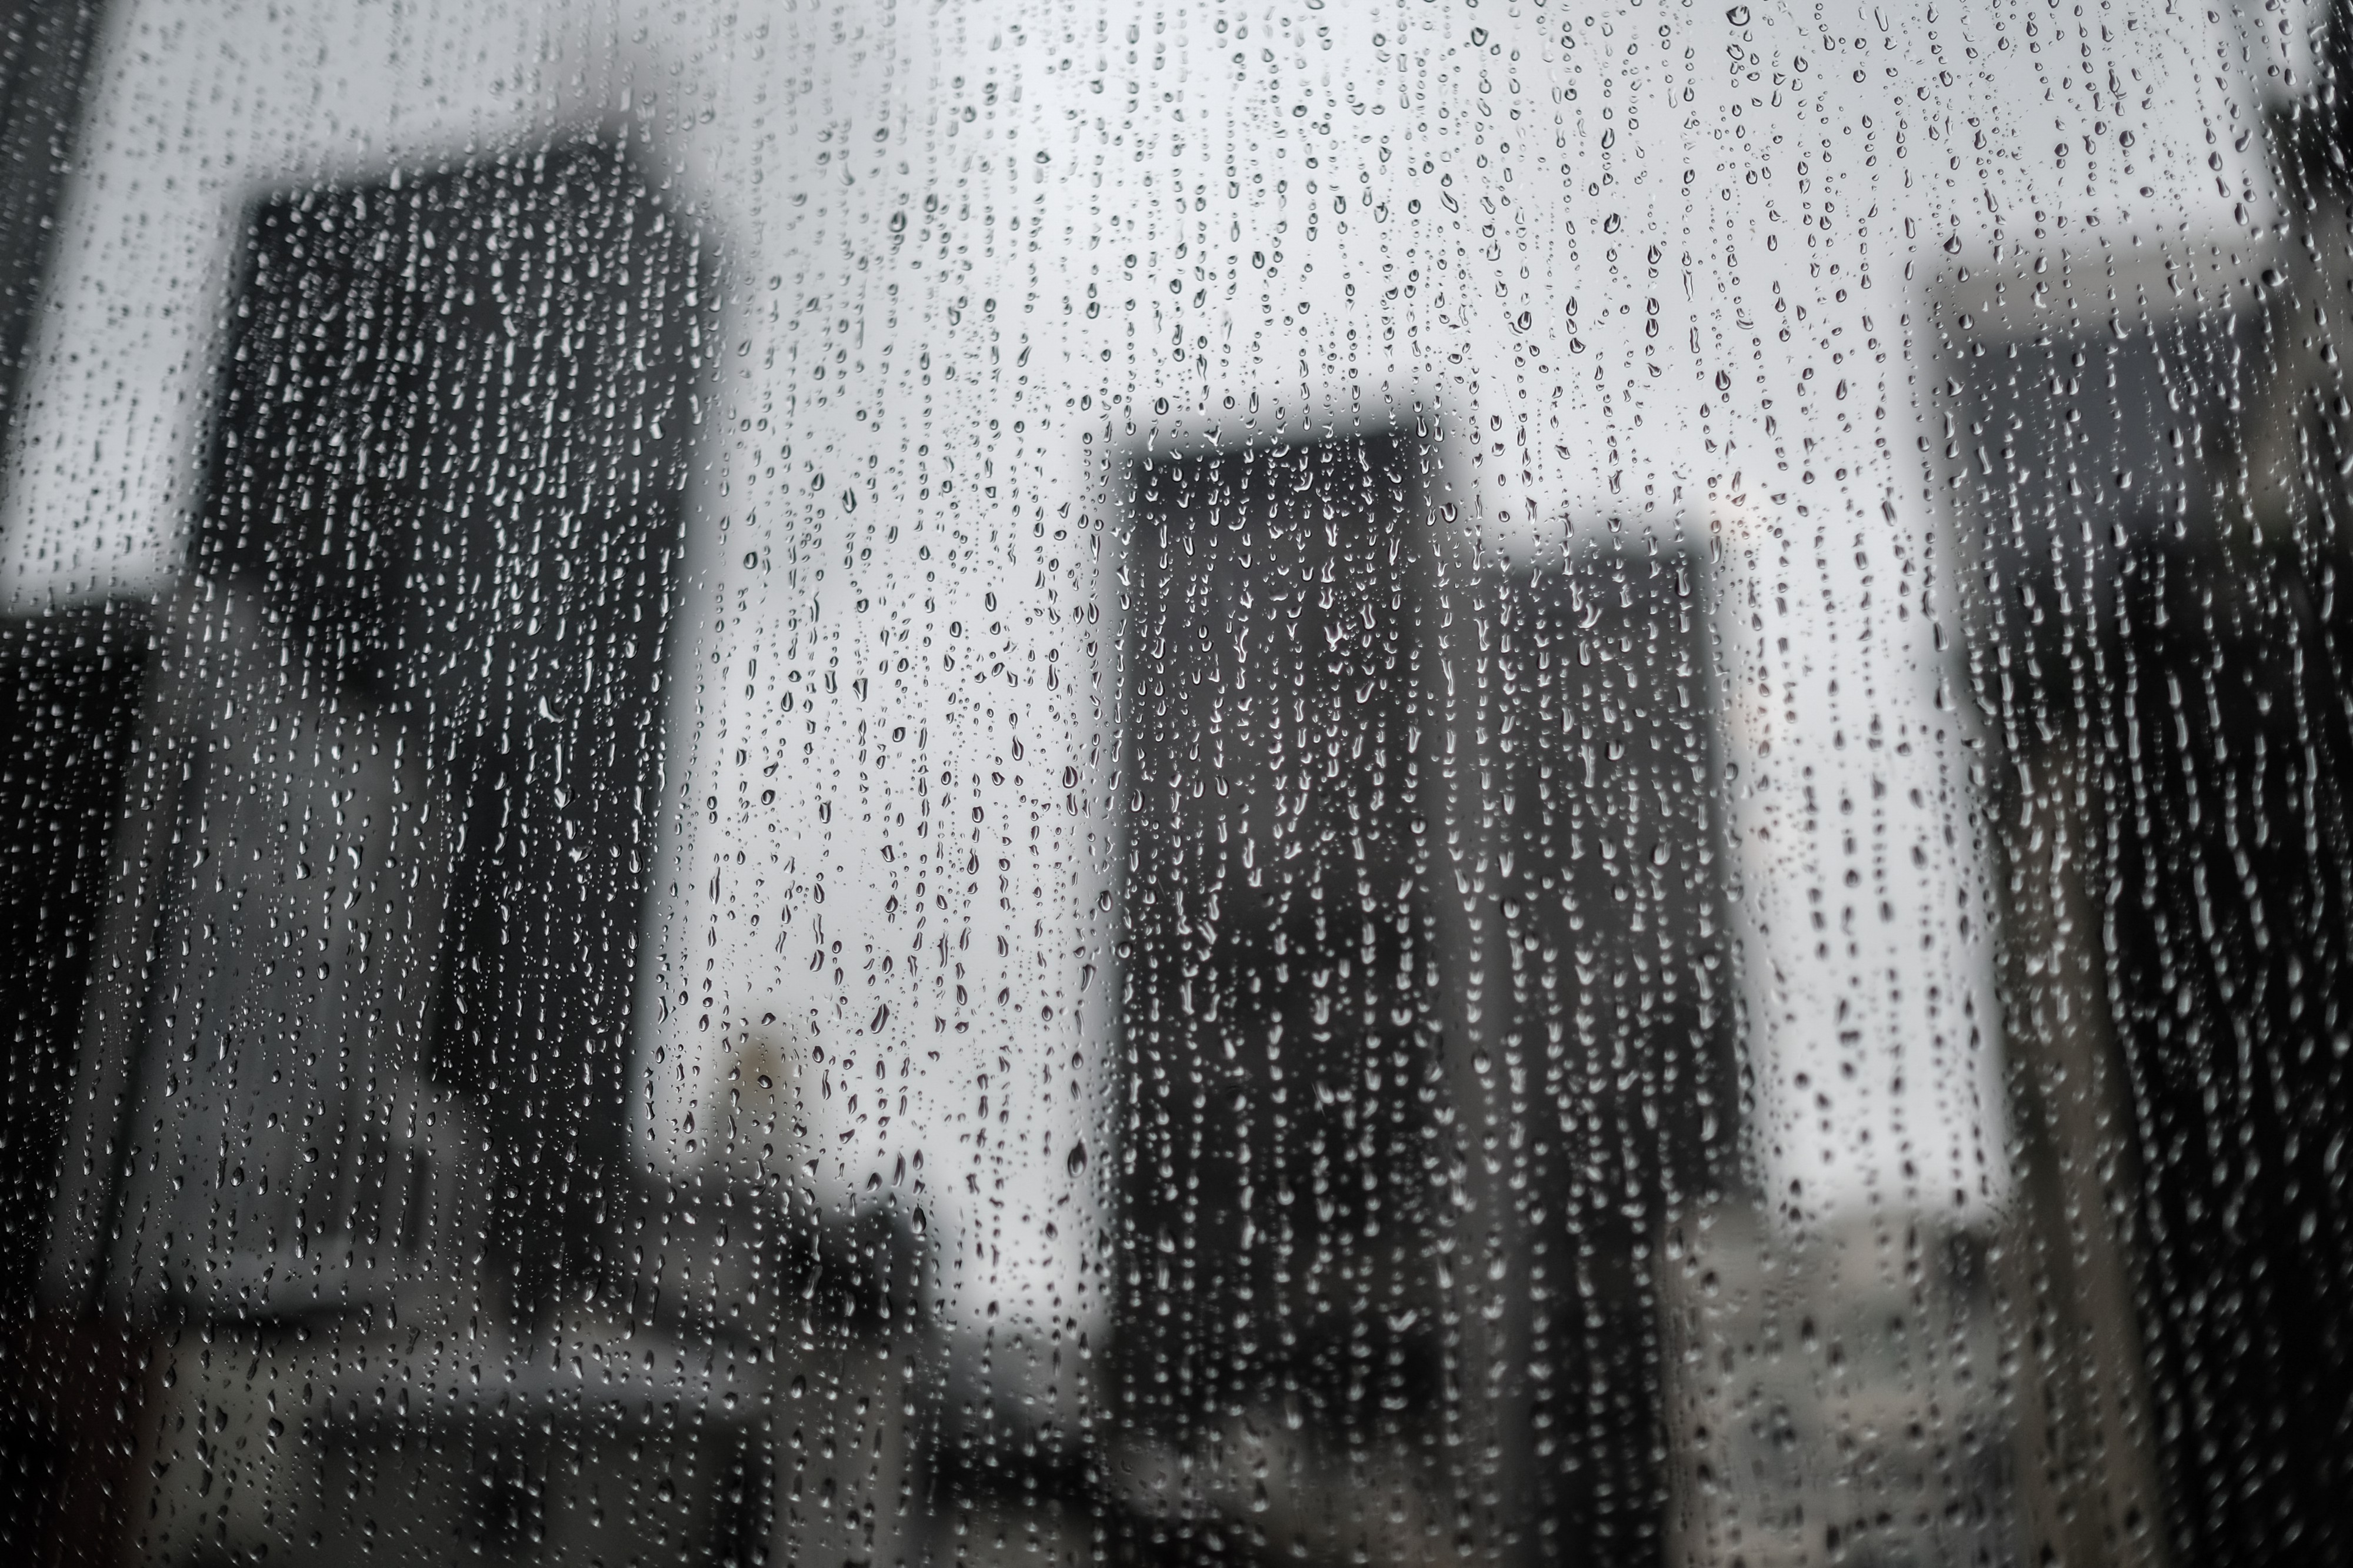 Photo looking out through a window covered with rain drops. There are blurry skyscrapers in the background.